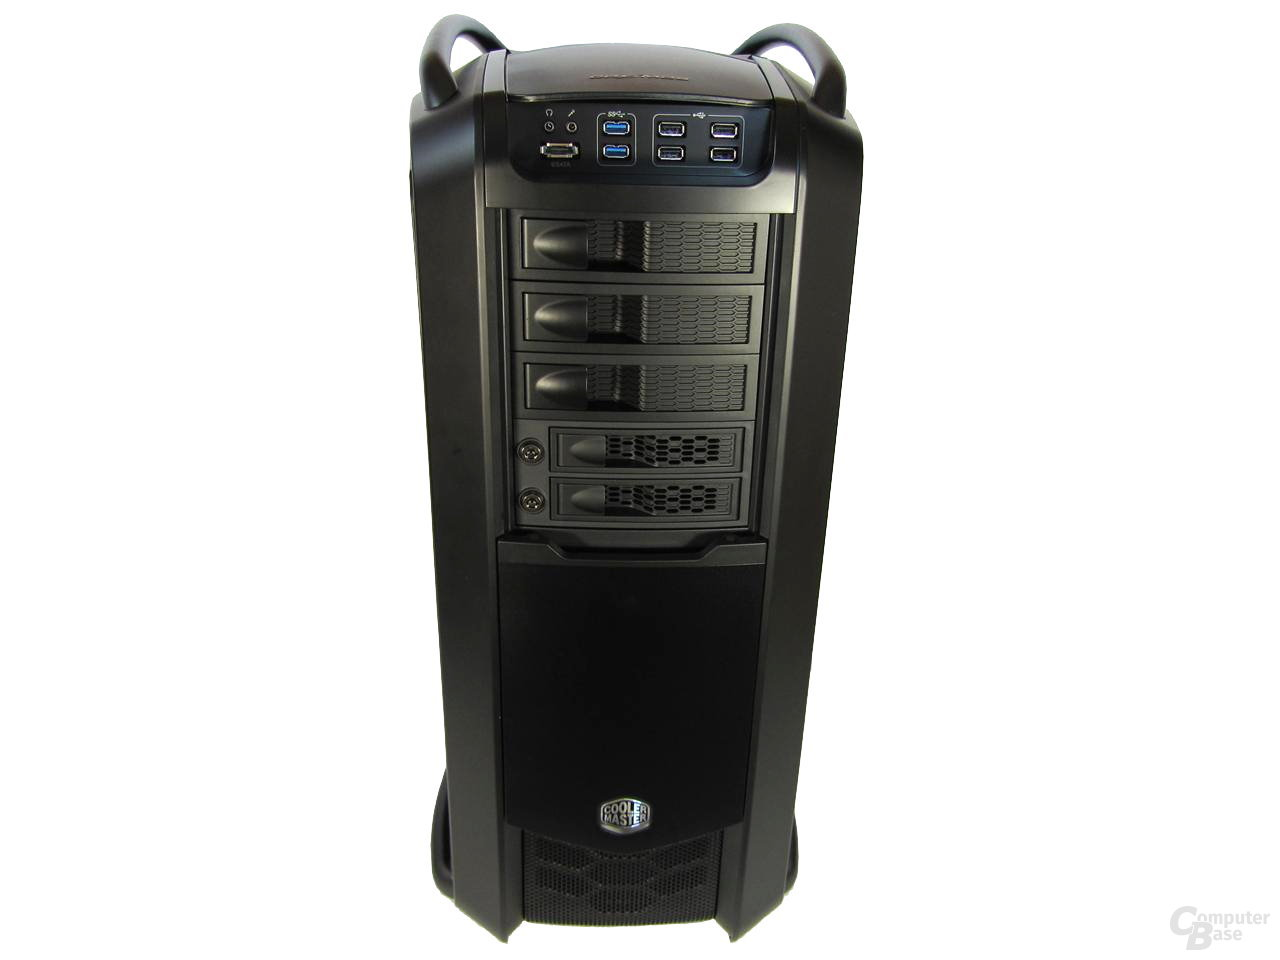 Cooler Master Cosmos II – Front